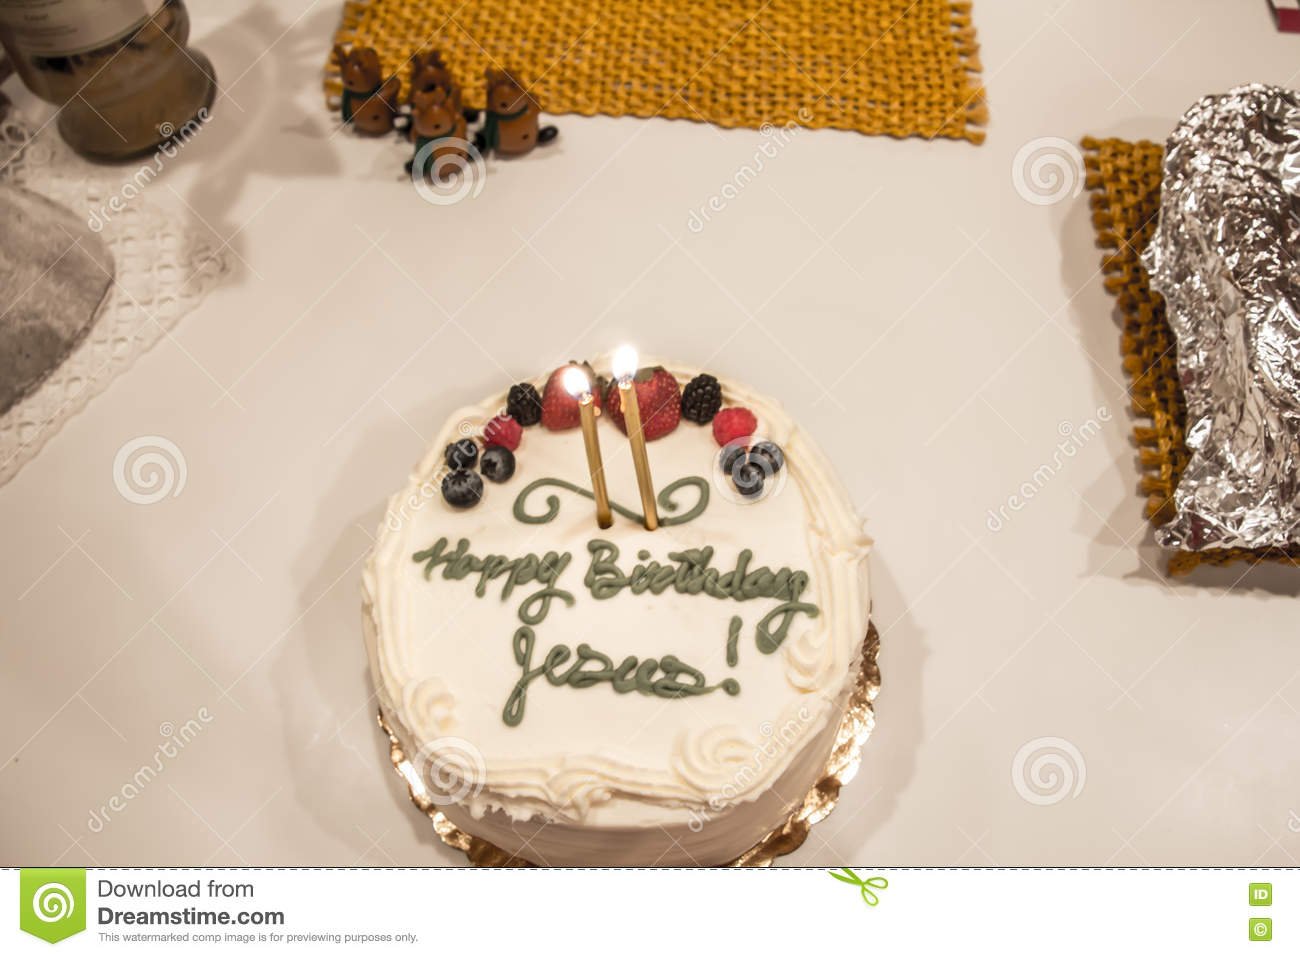 Enjoyable Birthday Cake For Jesus Celebrating Christmas Stock Photo Image Personalised Birthday Cards Veneteletsinfo